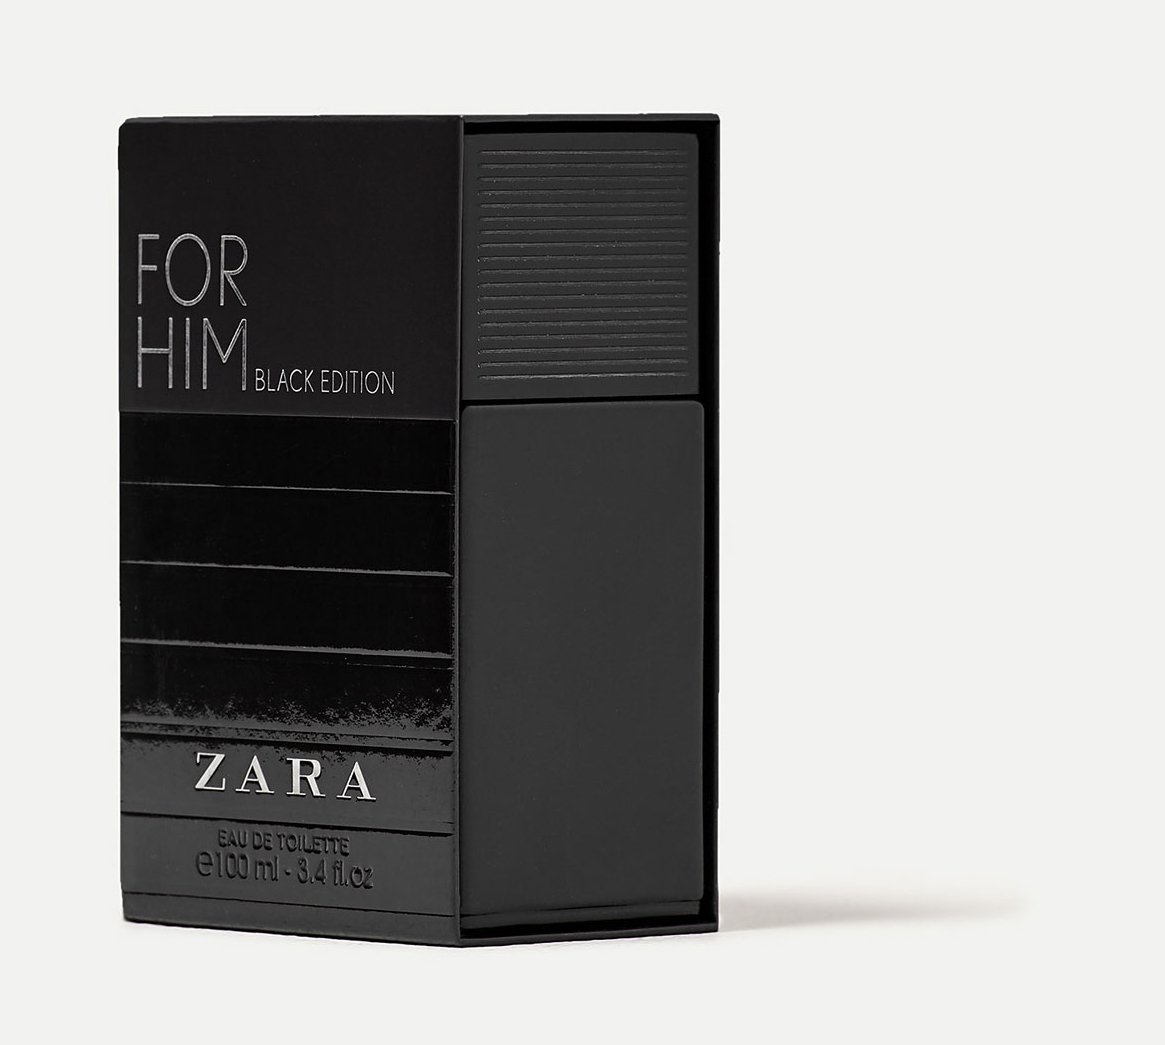 Zara For Him Black Edition | Reviews and Rating